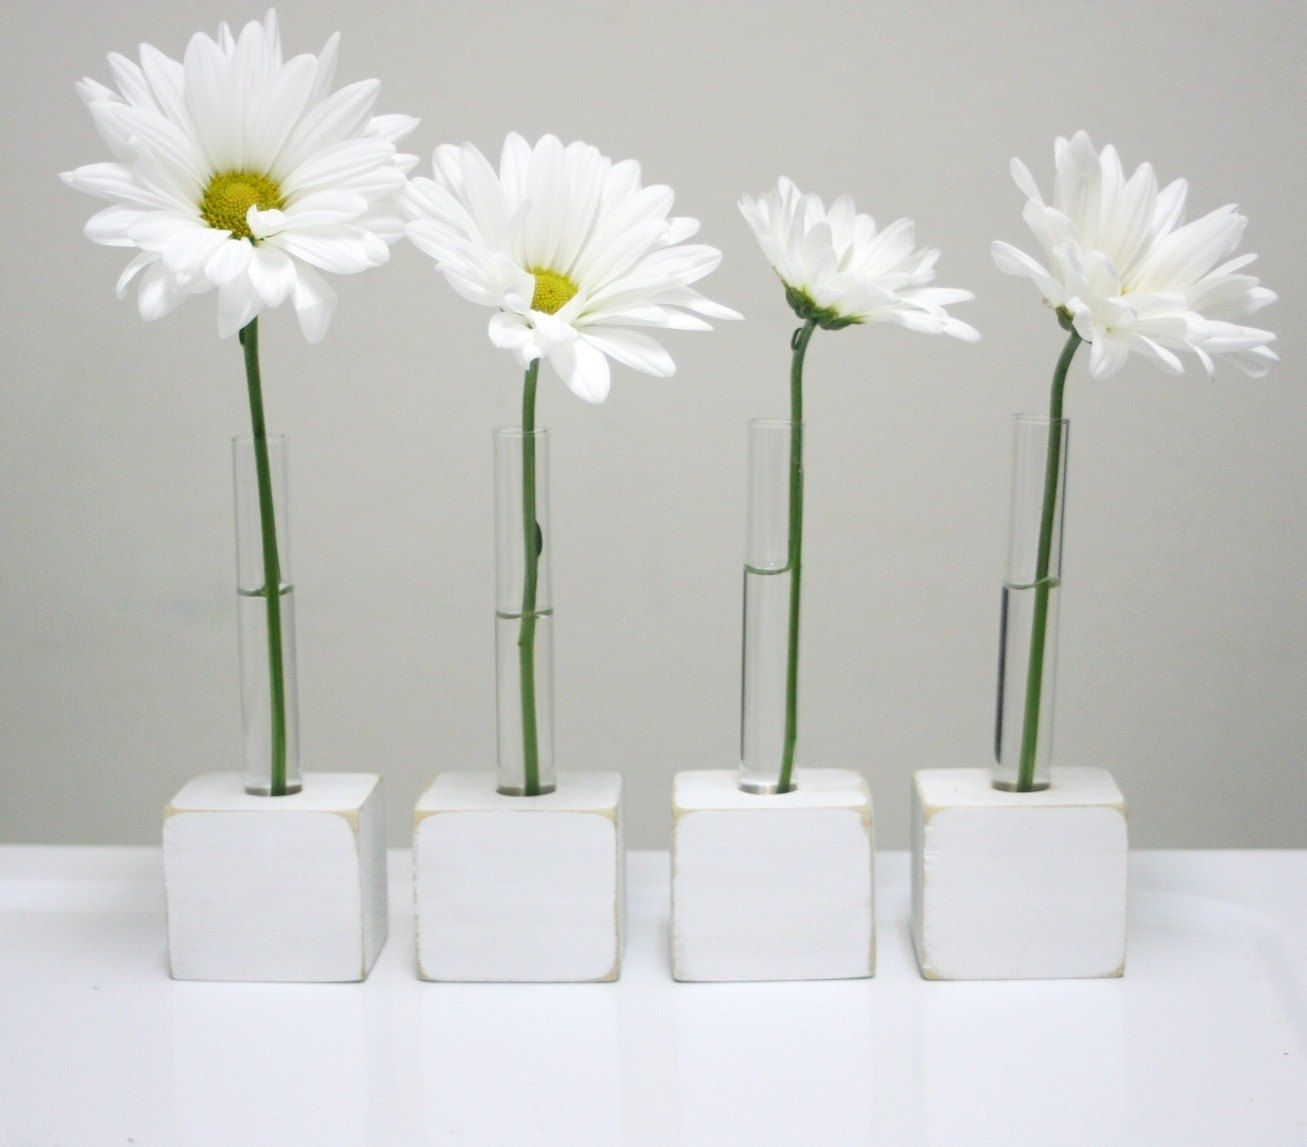 gerbera daisies feel appropriately playful and mod in stem  - bud vases with test tubes set of four made to order small for singleflower flower vase white custom order two options